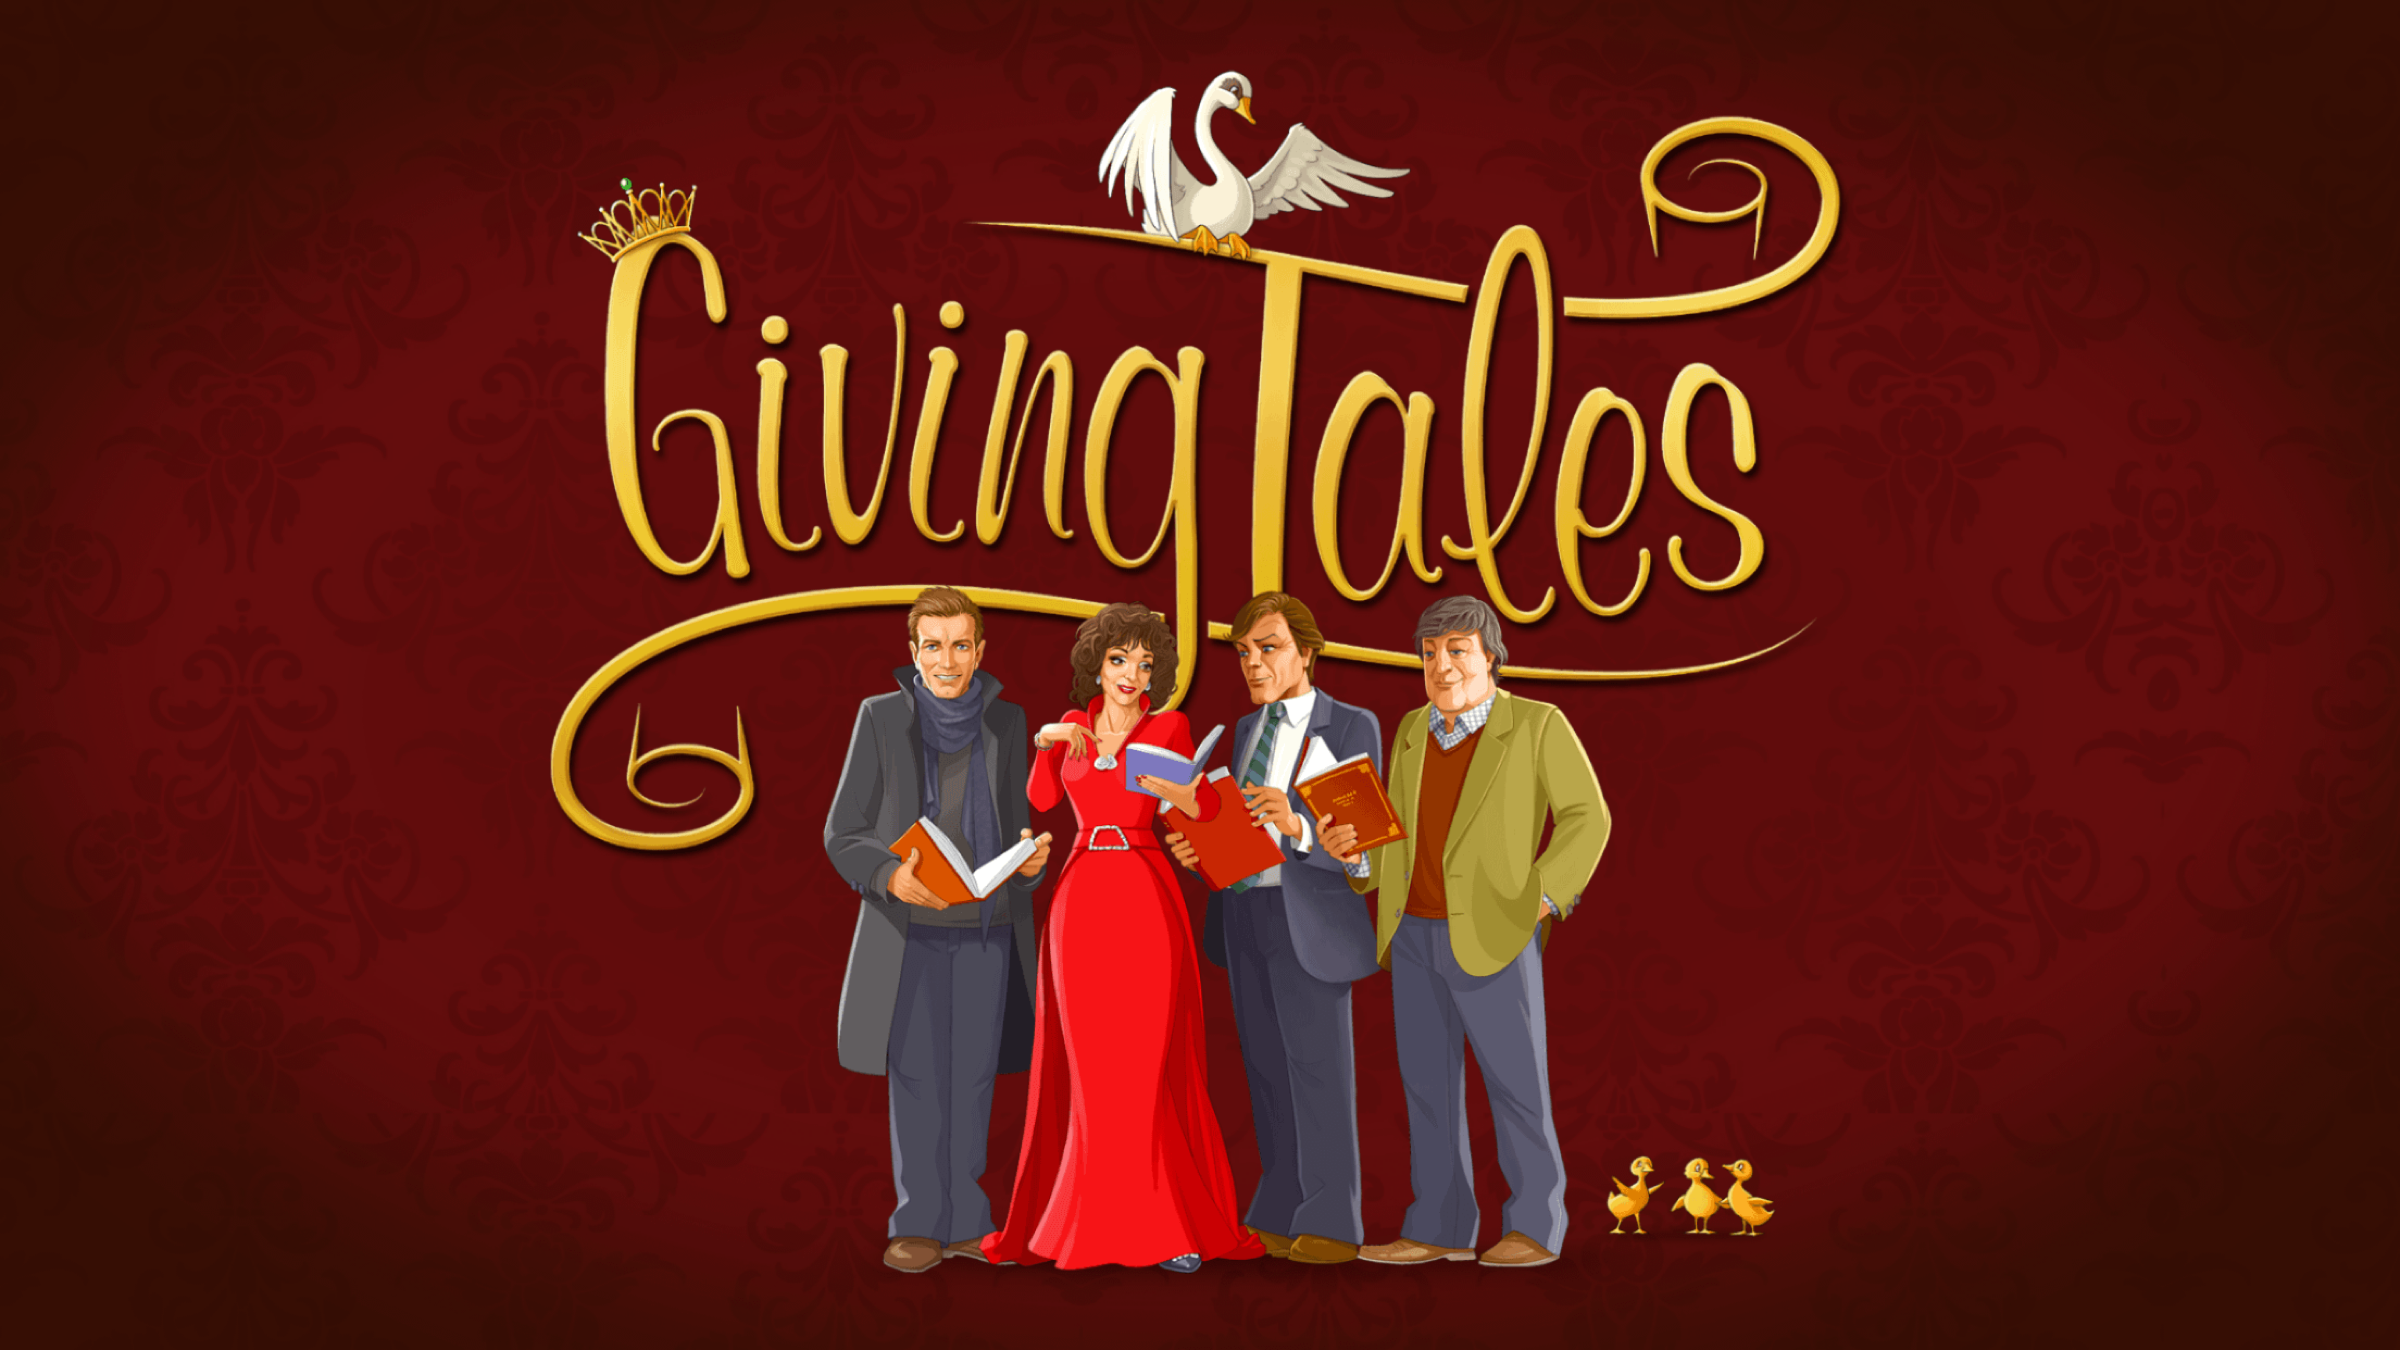 GivingTales features celebrity narrators, supports Unicef